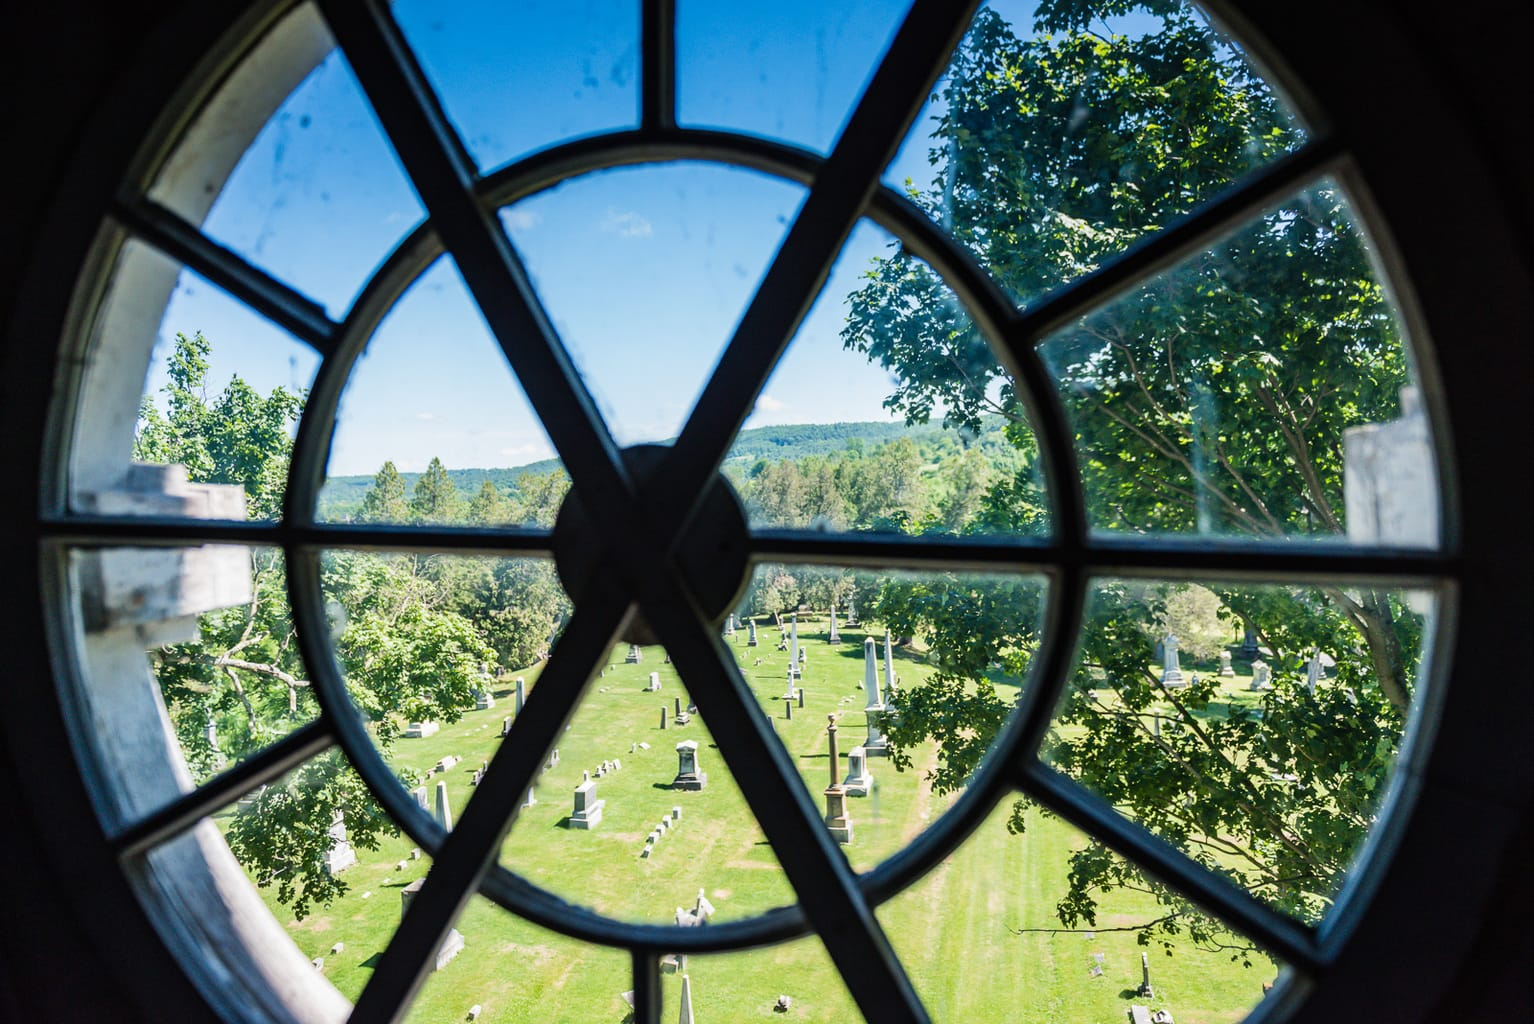 Round window looking out on cemetery on tower at the Old Stone Fort Museum in Schoharie NY.